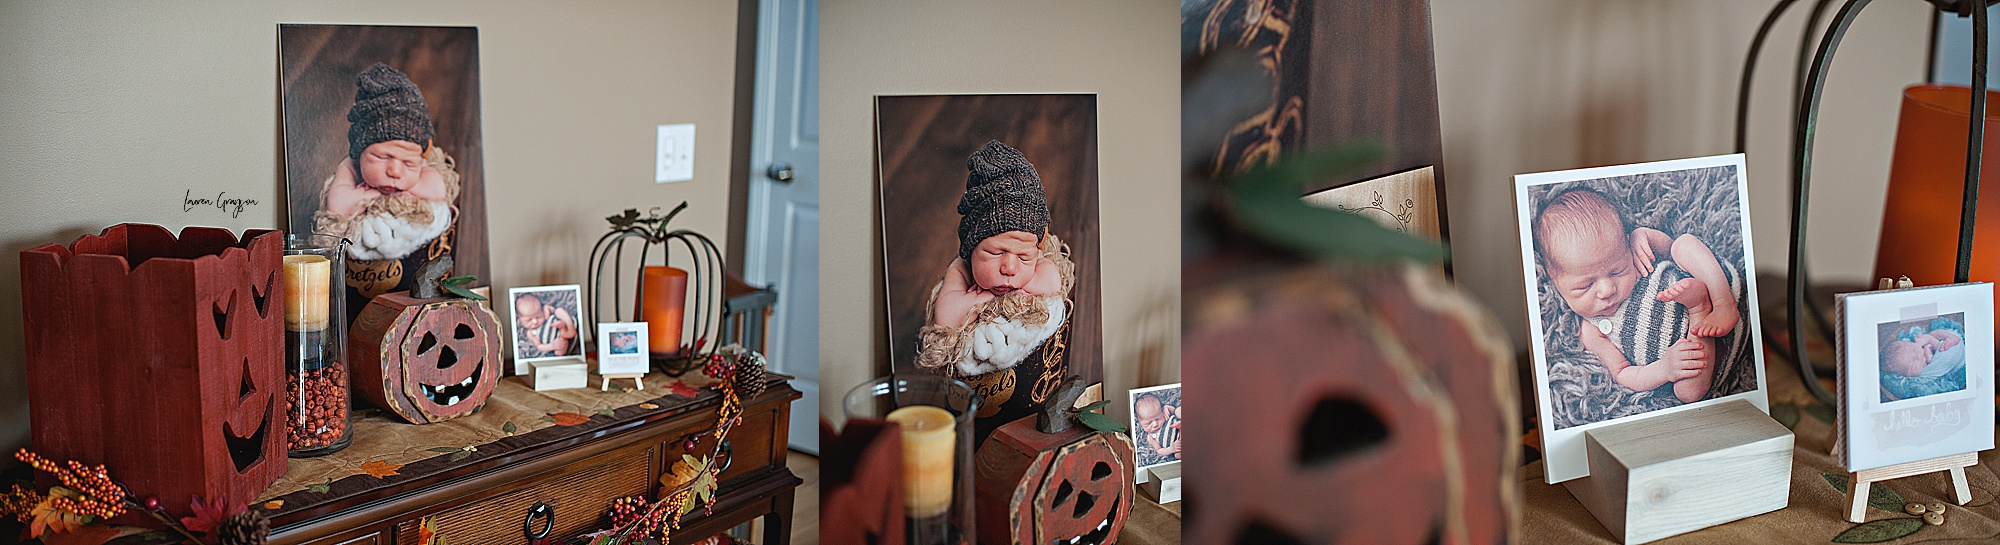 lauren-grayson-photography-cleveland-ohio-family-session-lifestyle-in-home_0014.jpg